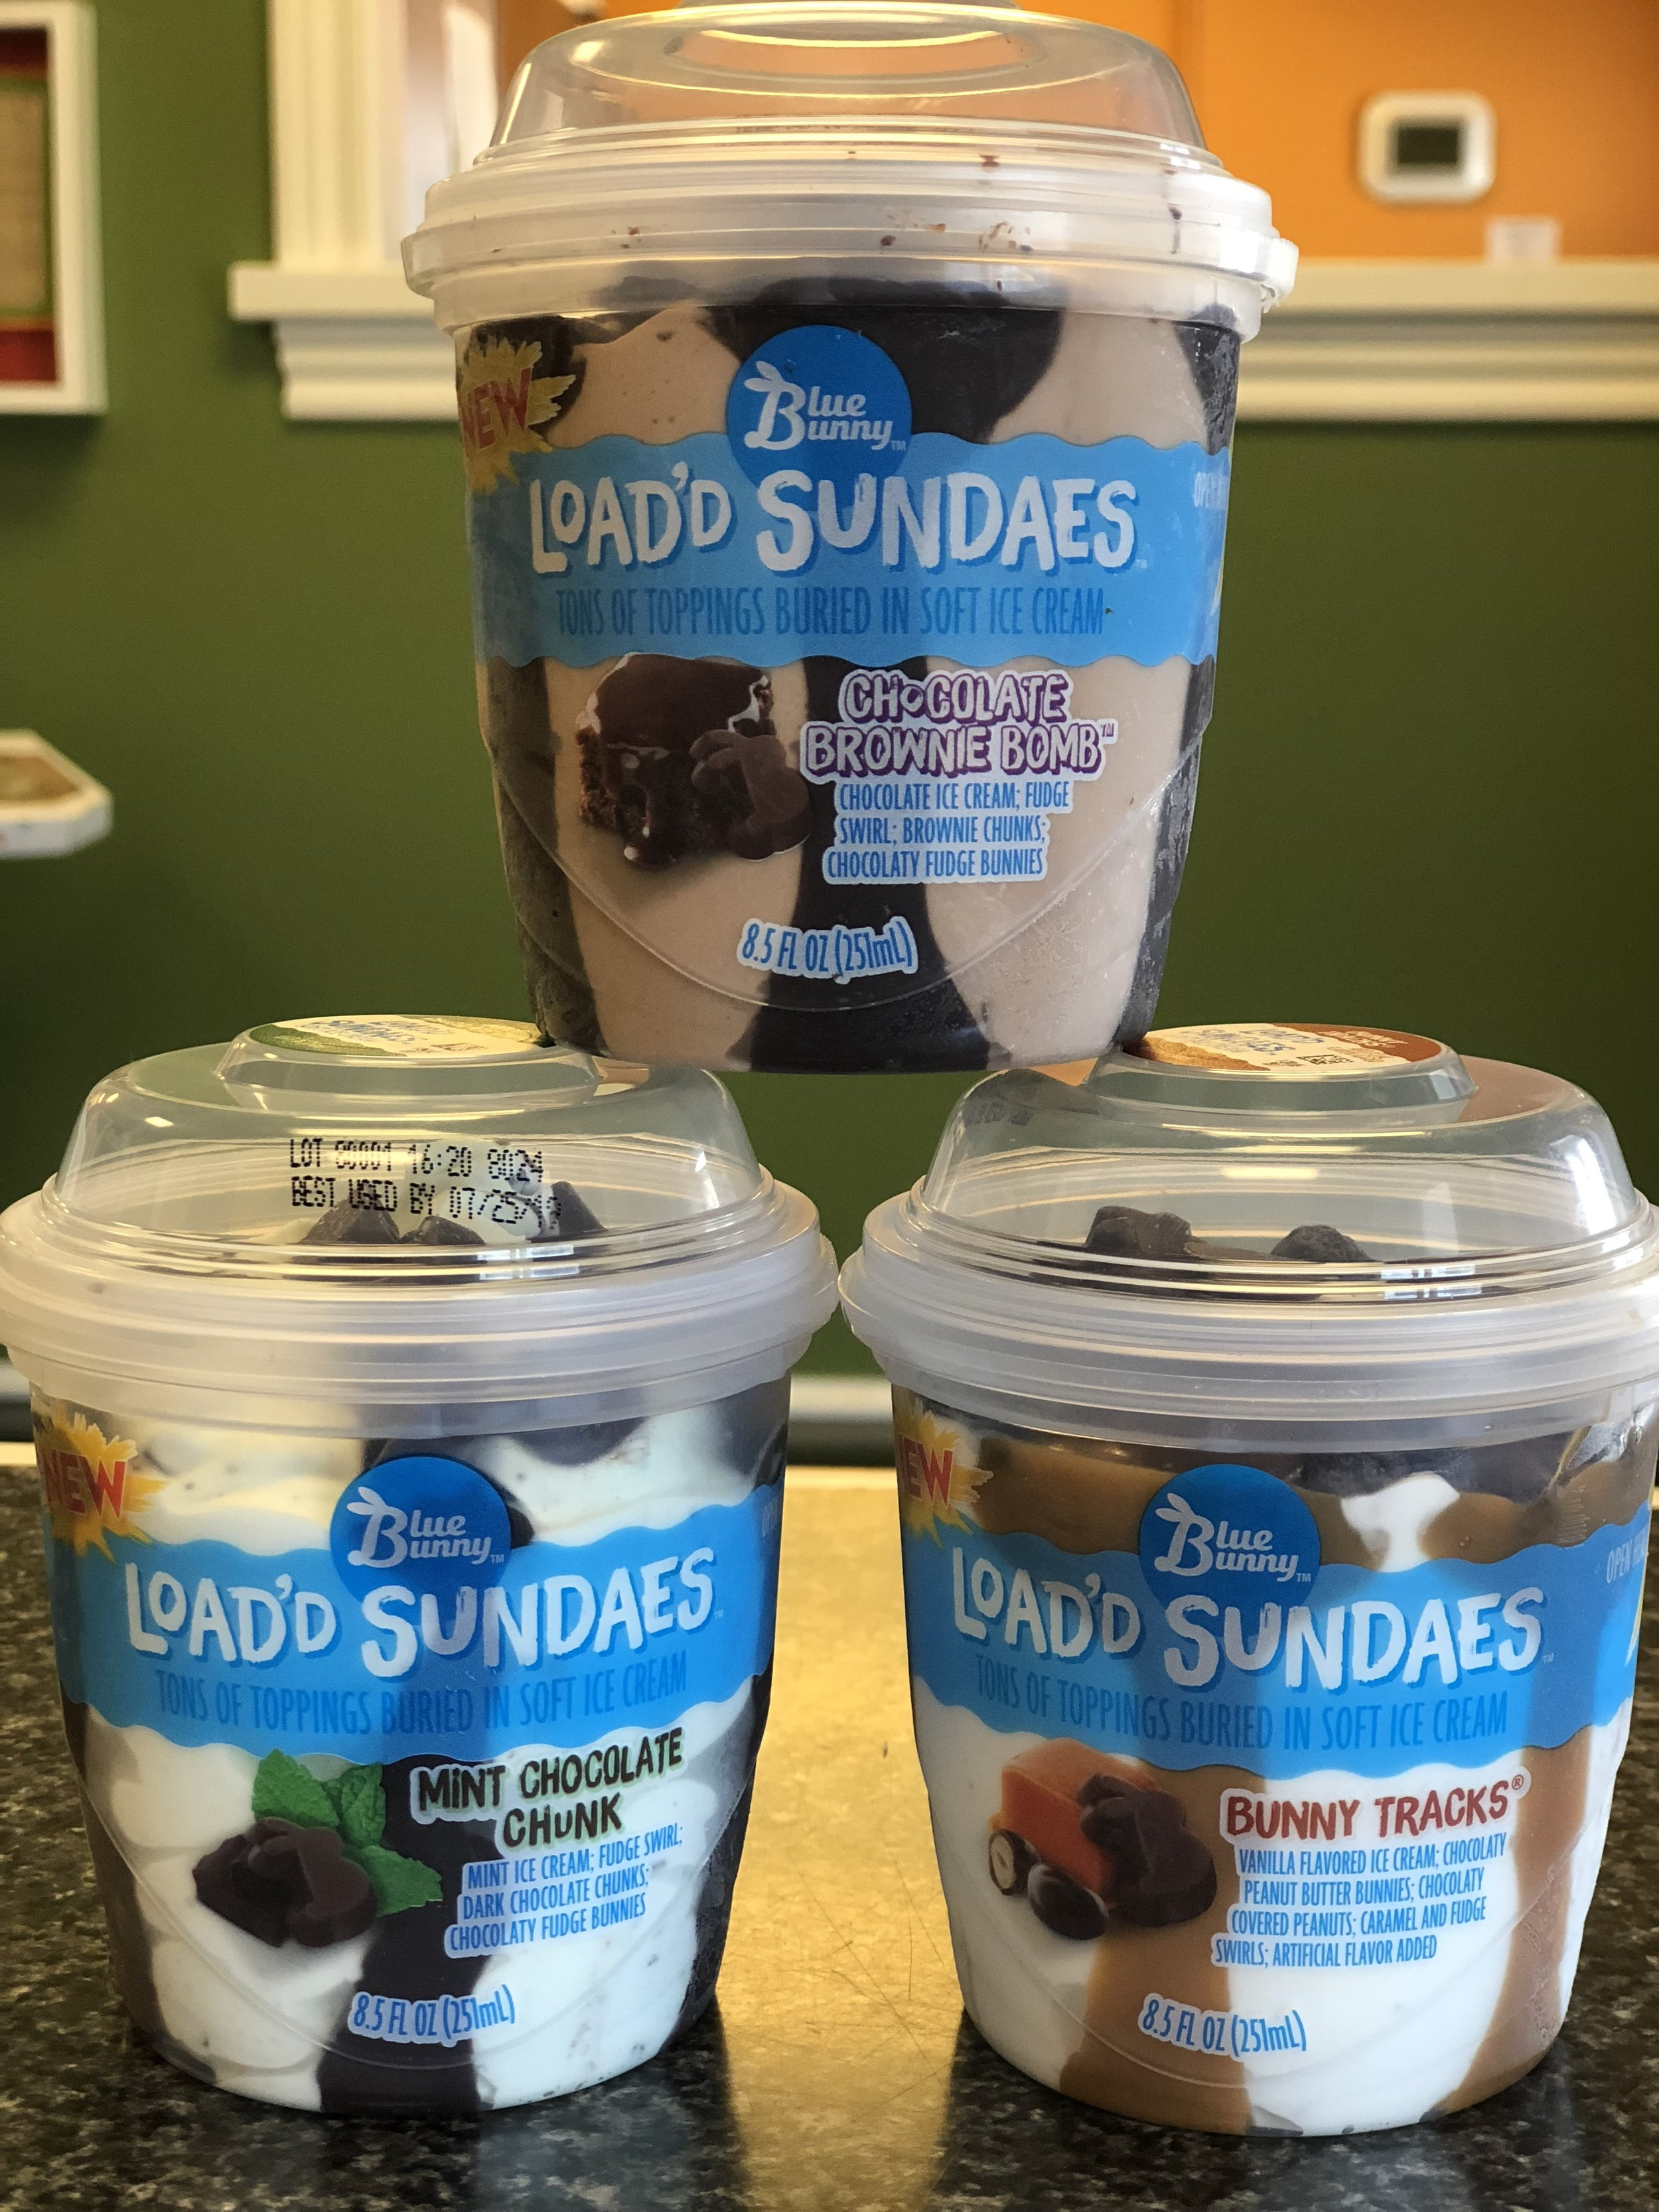 Blue Bunny Load'd Sundaes!    Add a dessert to your meal with Bunny Tracks, Chocolate Brownie Bomb, or Mint Chocolate Chunk sundaes! Available for delivery too.  $4.24